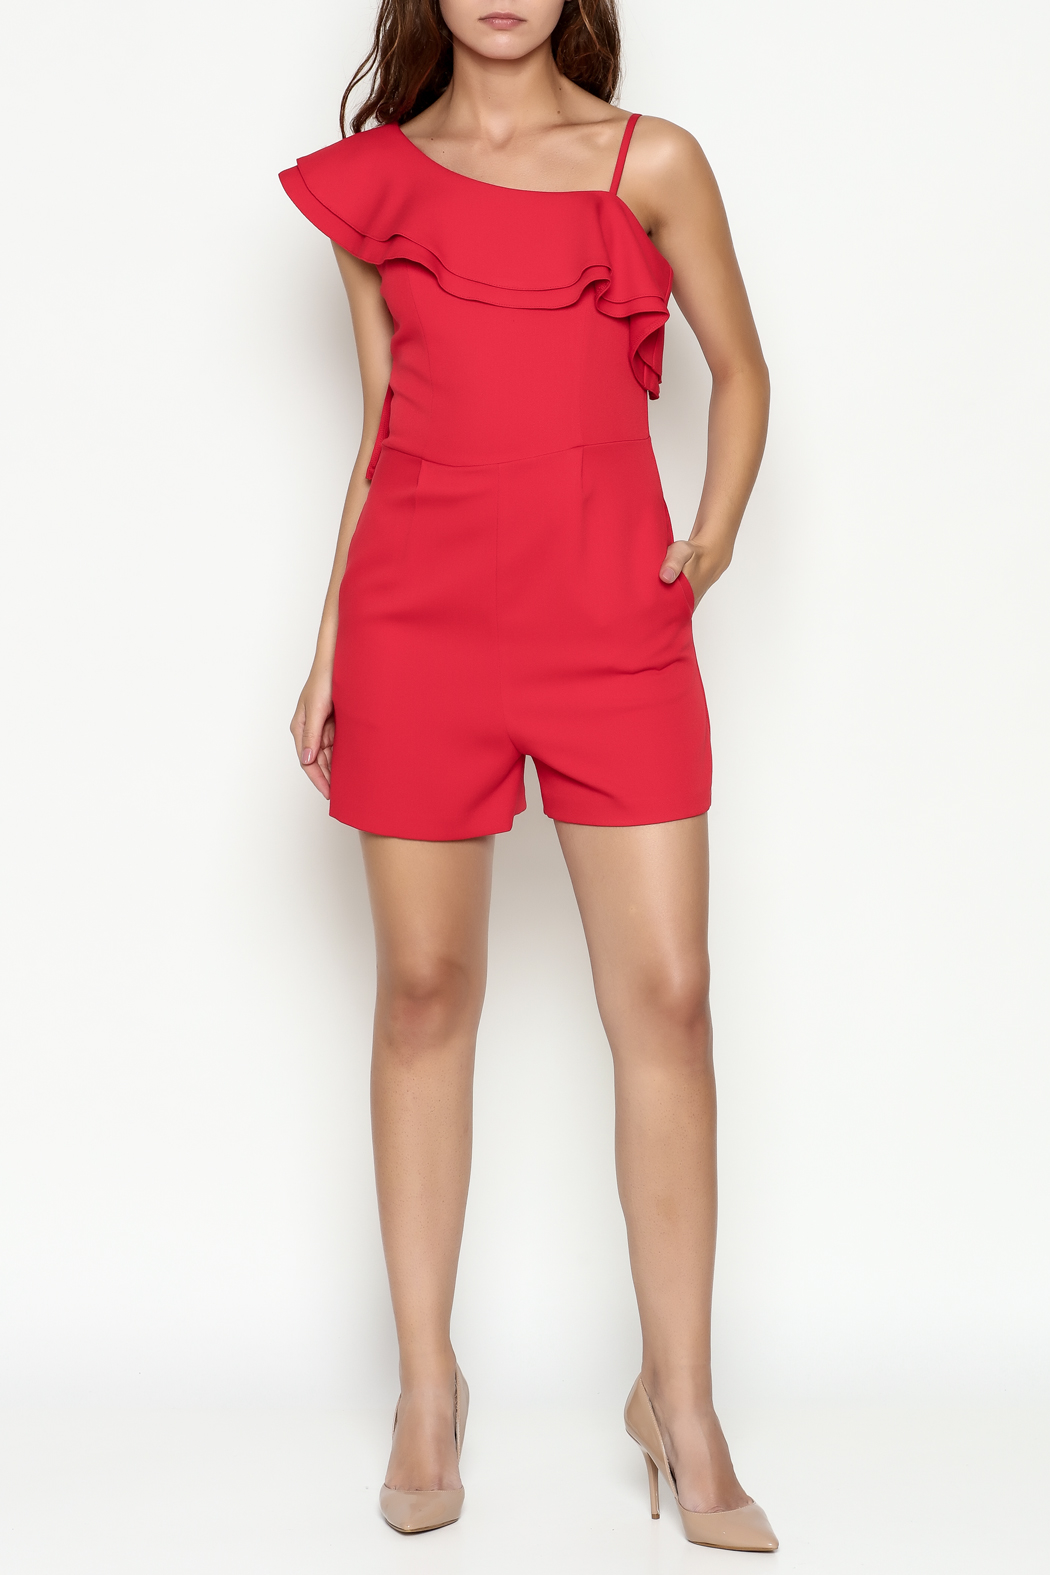 C. Luce Red Ruffle Romper - Side Cropped Image